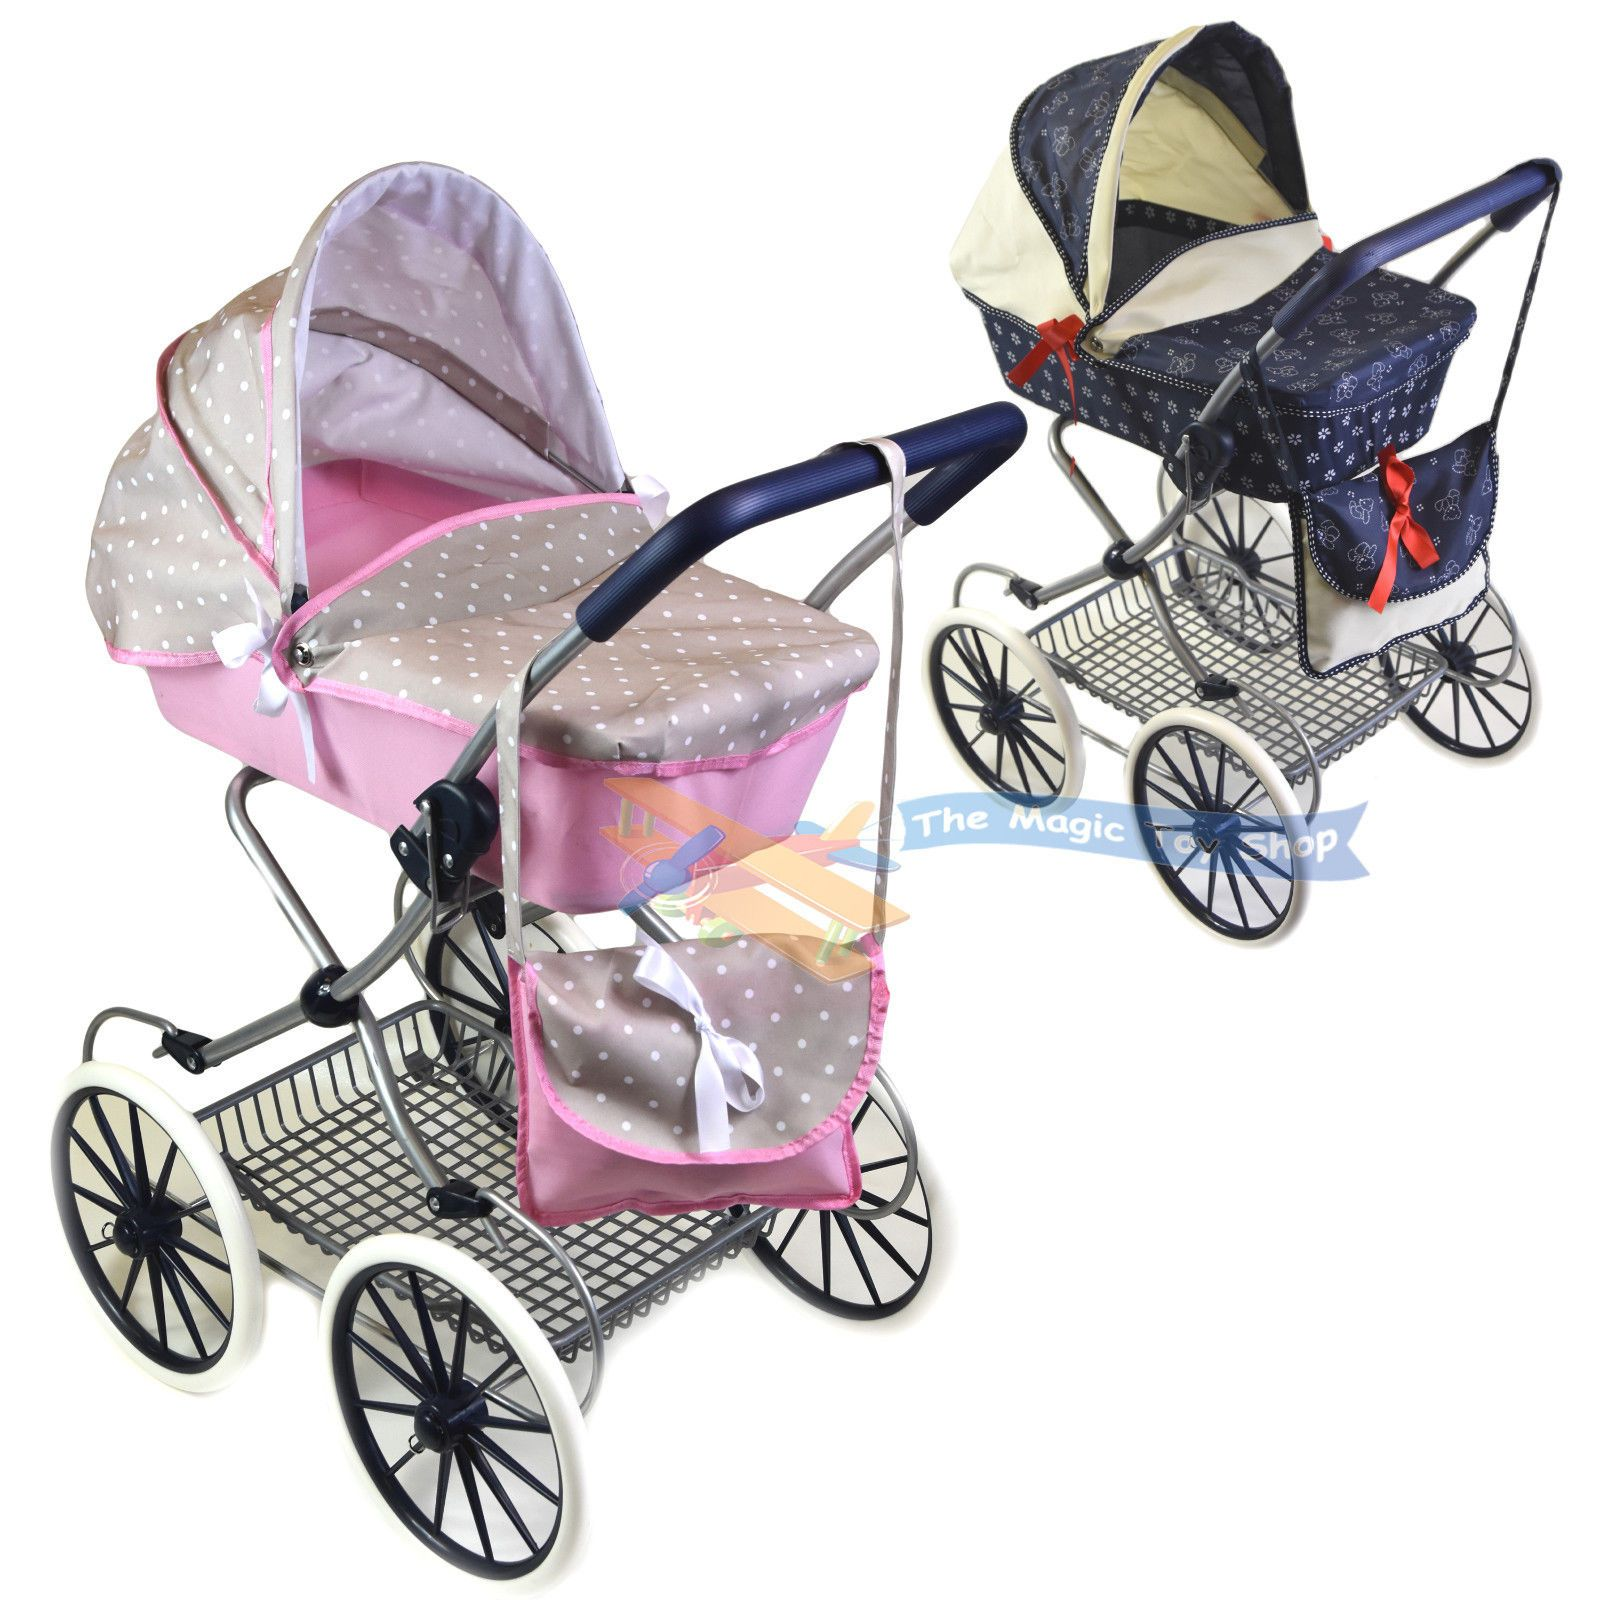 Cambridge style dolls pram stroller with storage basket and carry bag girl bug